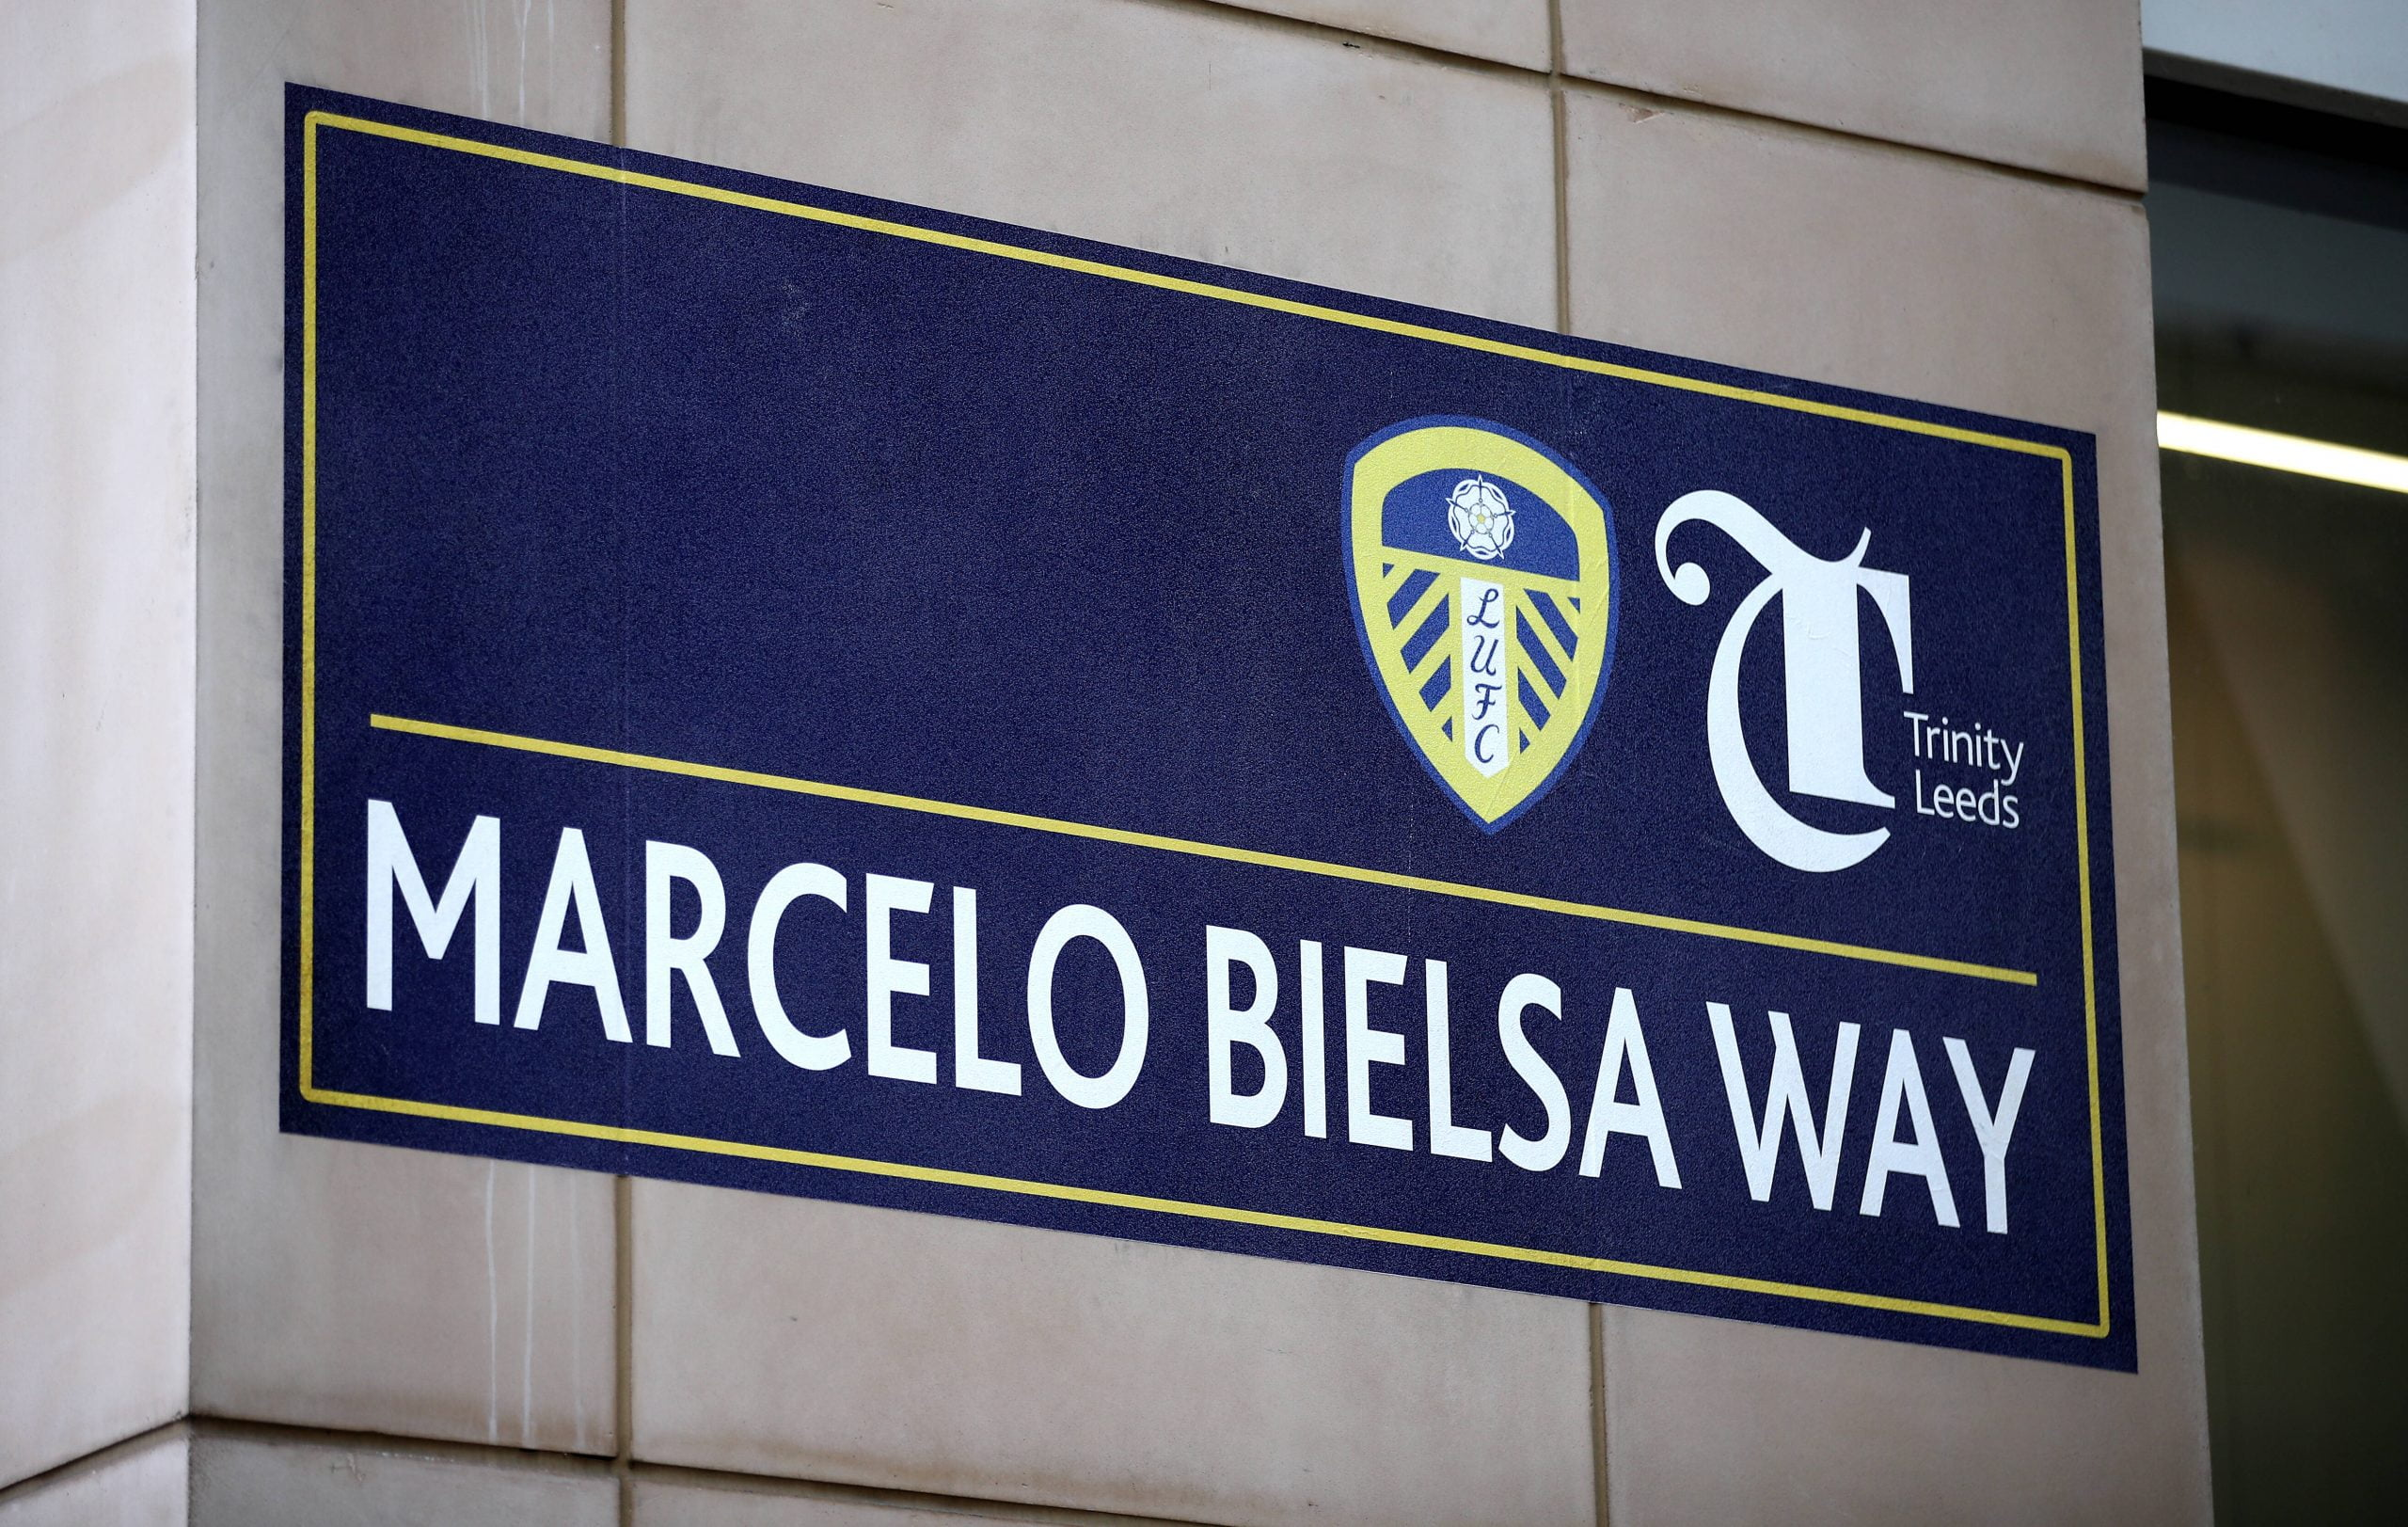 Marcelo Bielsa Way